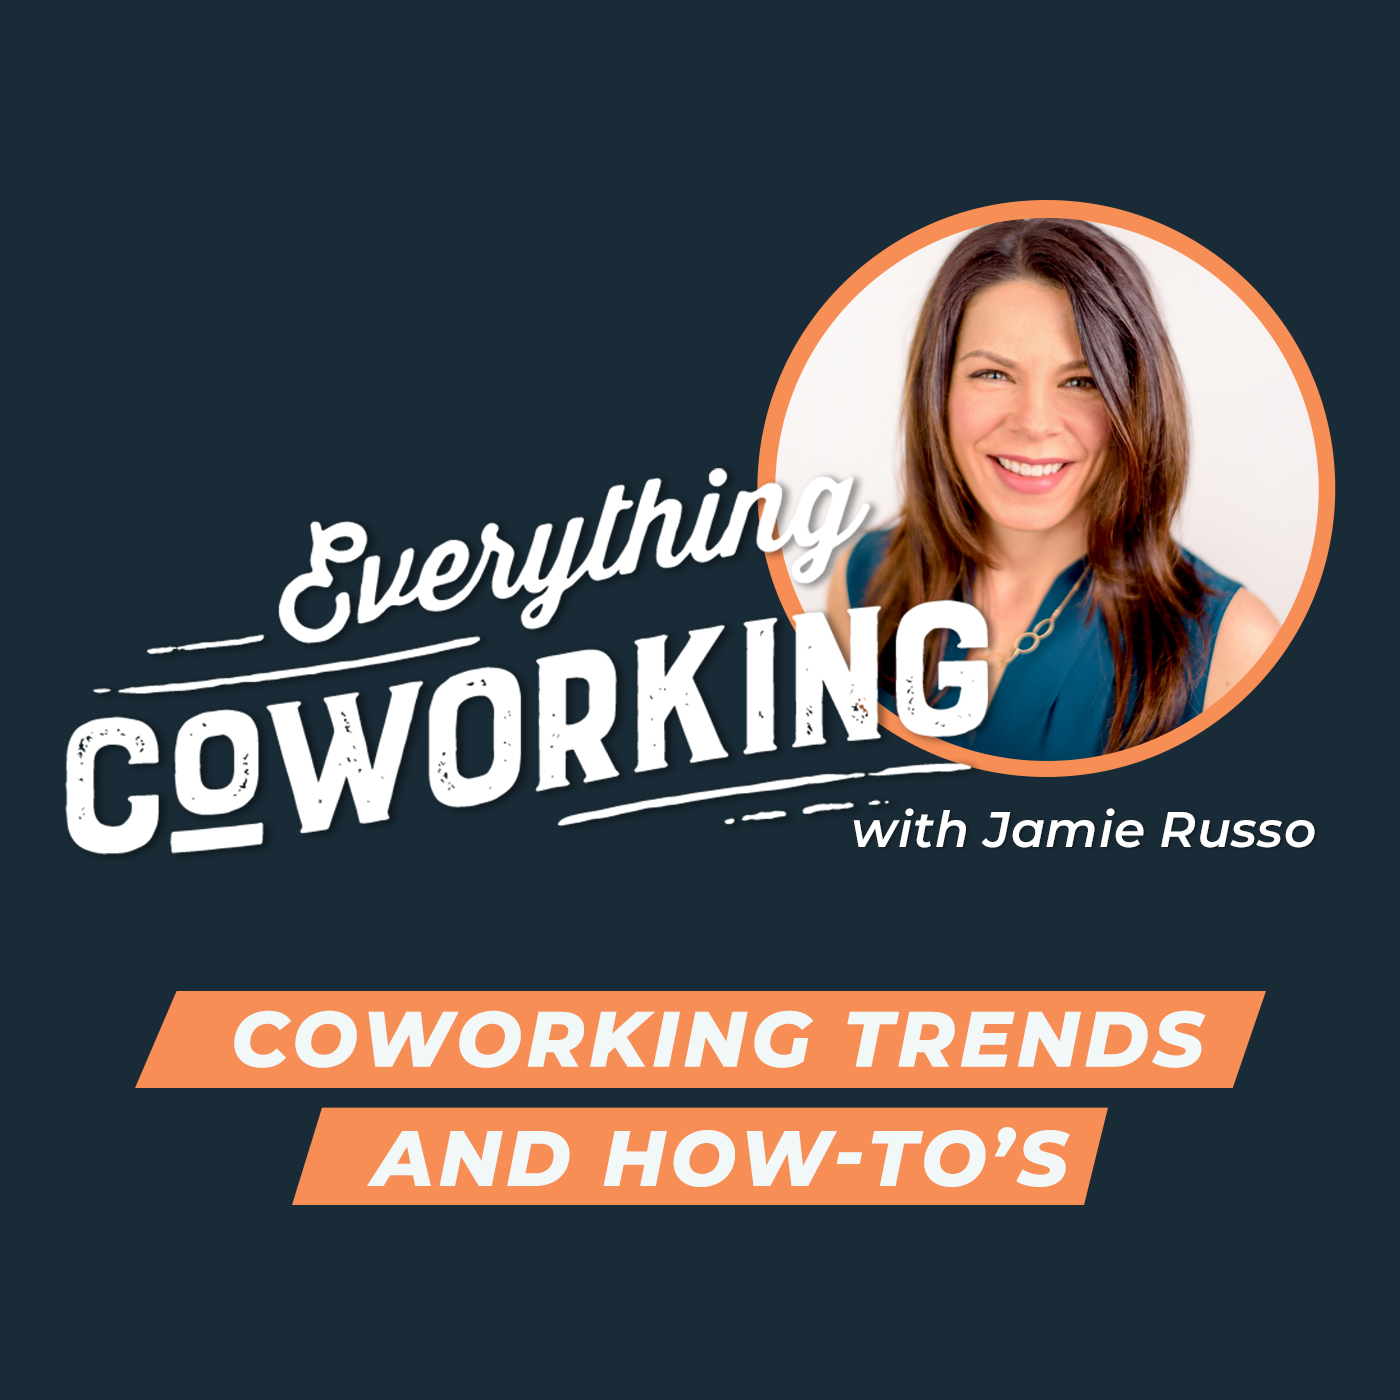 181. KPIs for Coworking Spaces with a 2021 Lens